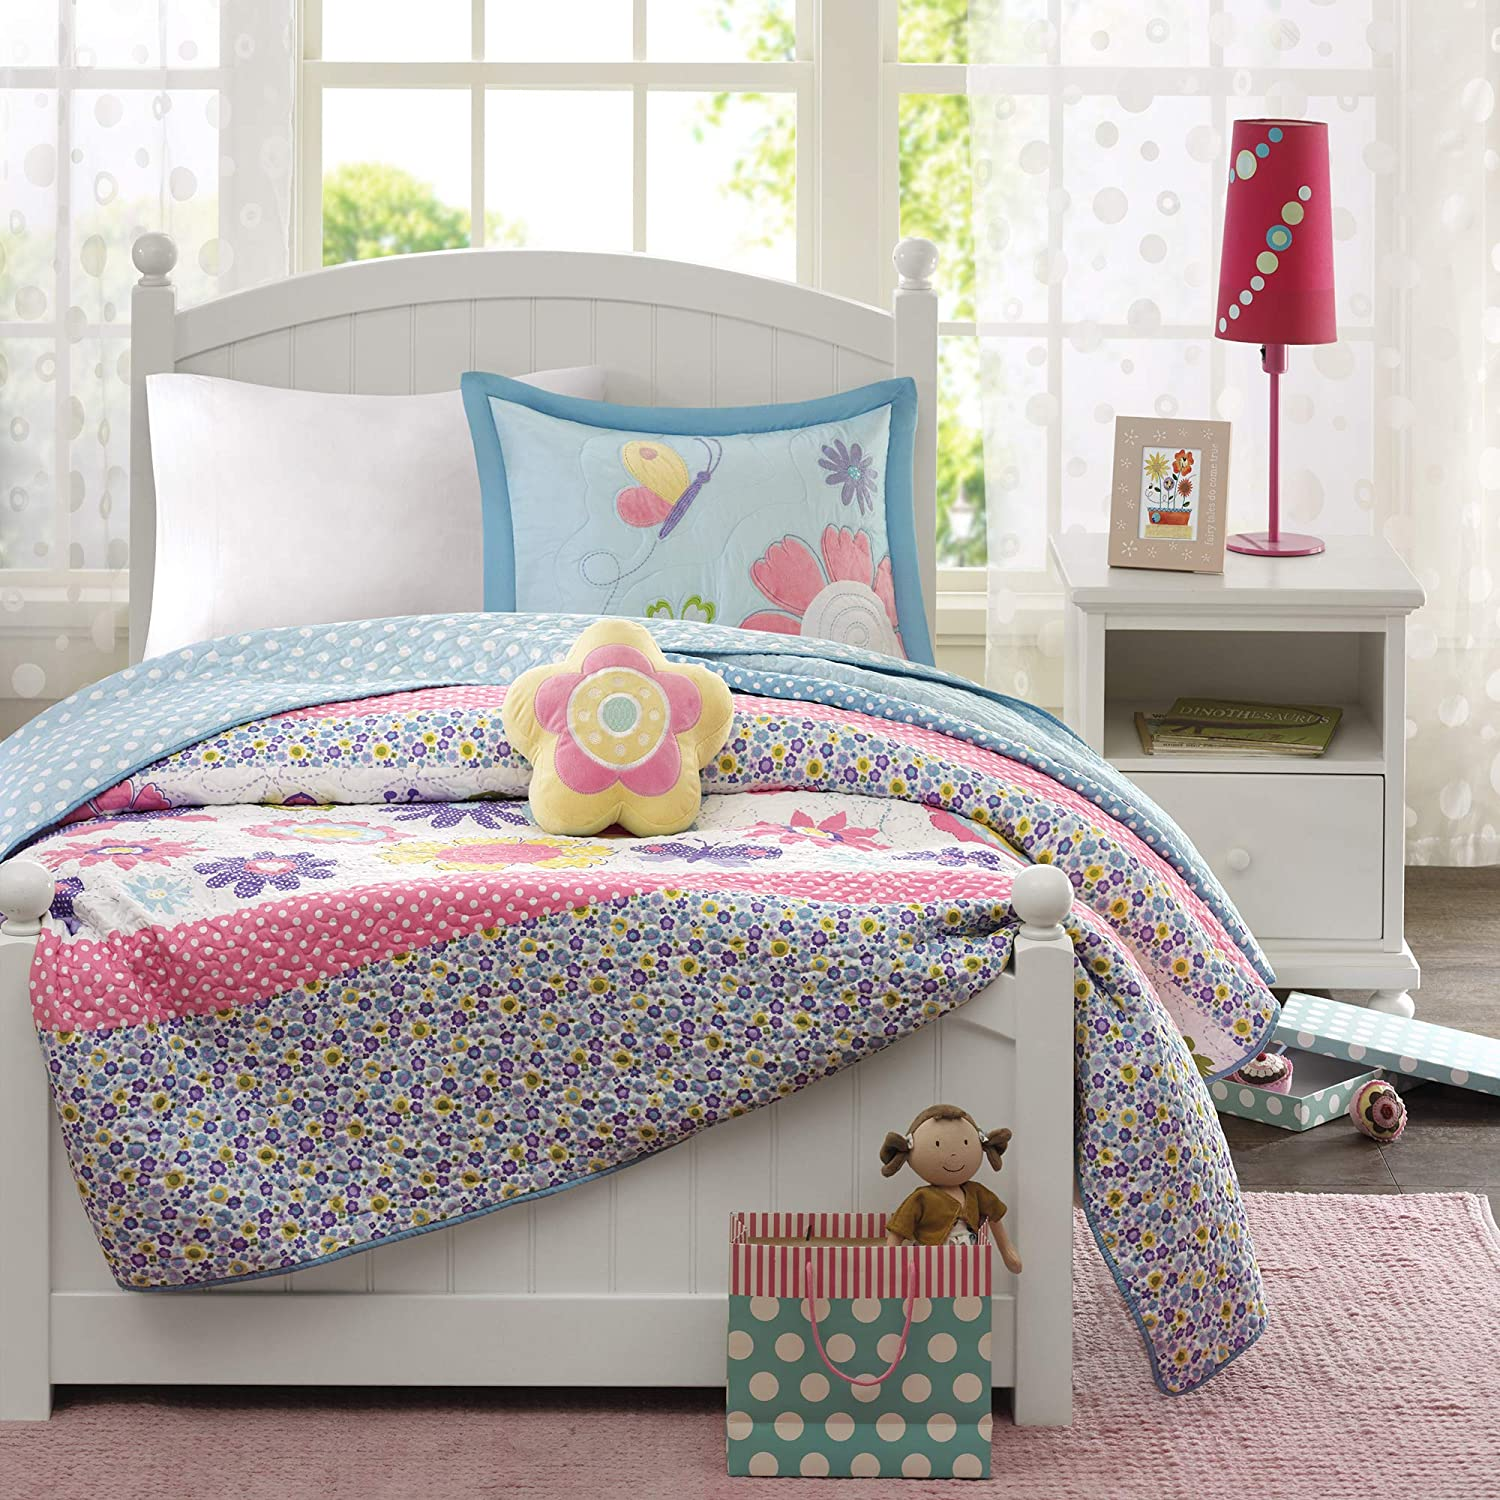 Mi Zone Kids Crazy Daisy Twin Bedding For Girls Quilt Set - Sky Blue, Pink , Flowers, Butterfly – 3 Piece Kids Girls Quilts – Ultra Soft Microfiber Quilt Sets Coverlet